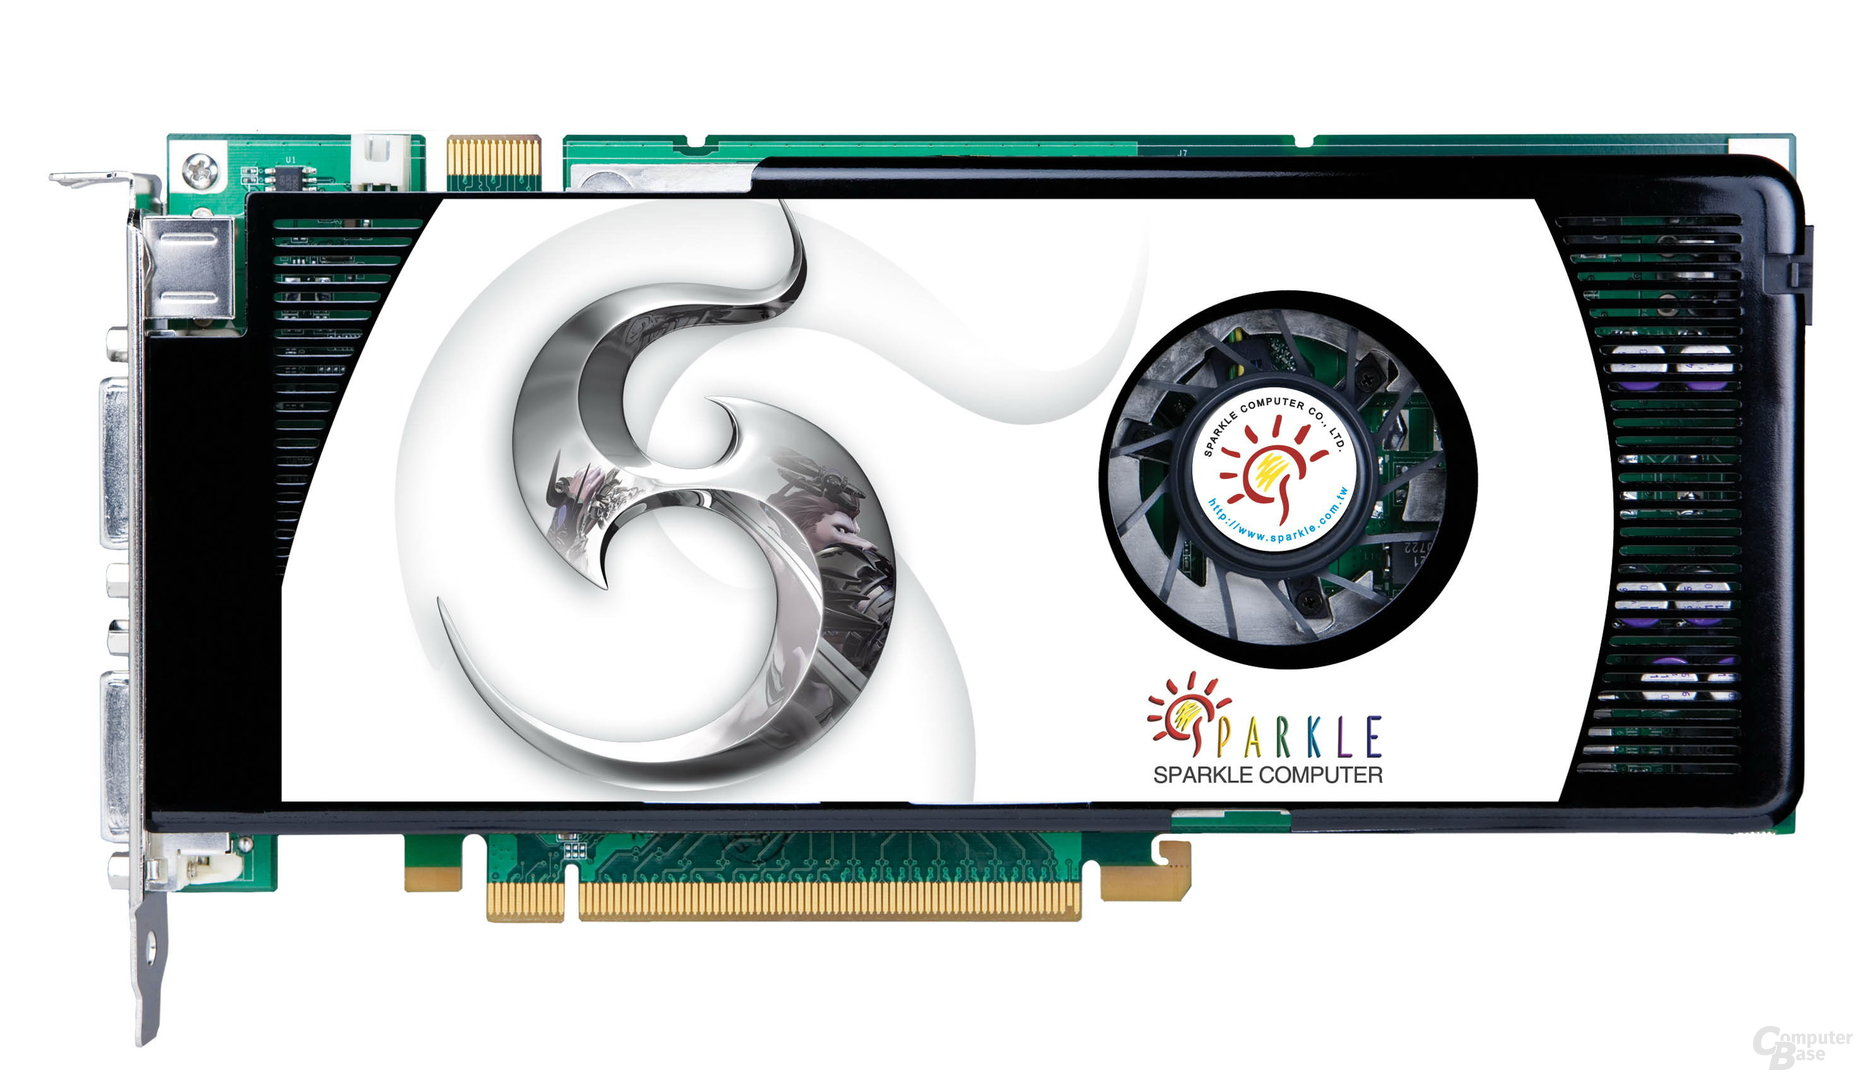 Sparkle GeForce 8800 GT